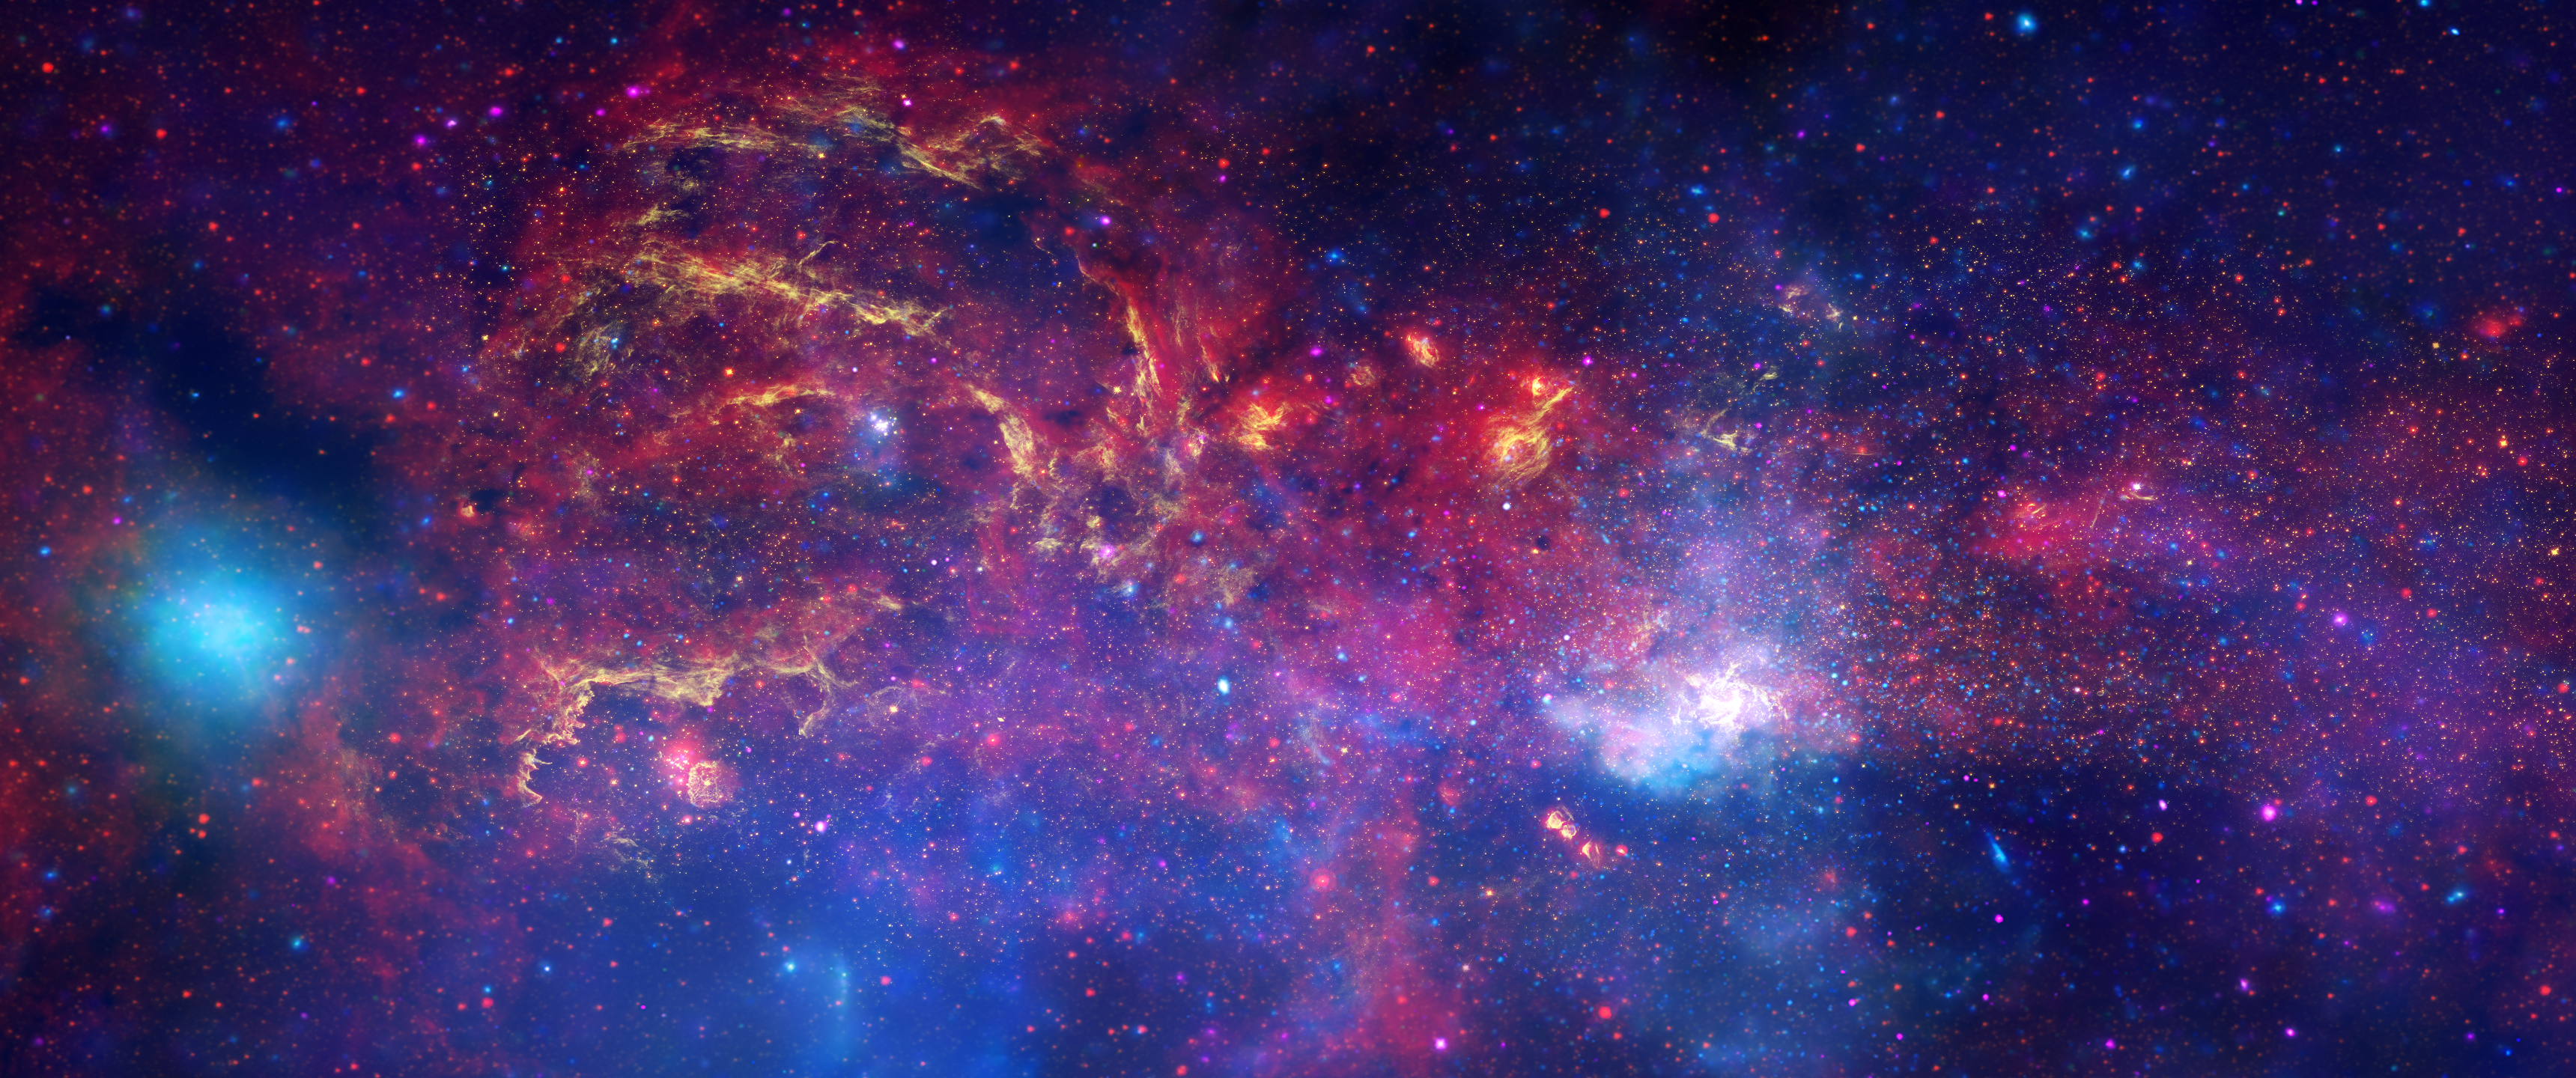 3440x1440 Space Wallpapers Top Free 3440x1440 Space Backgrounds